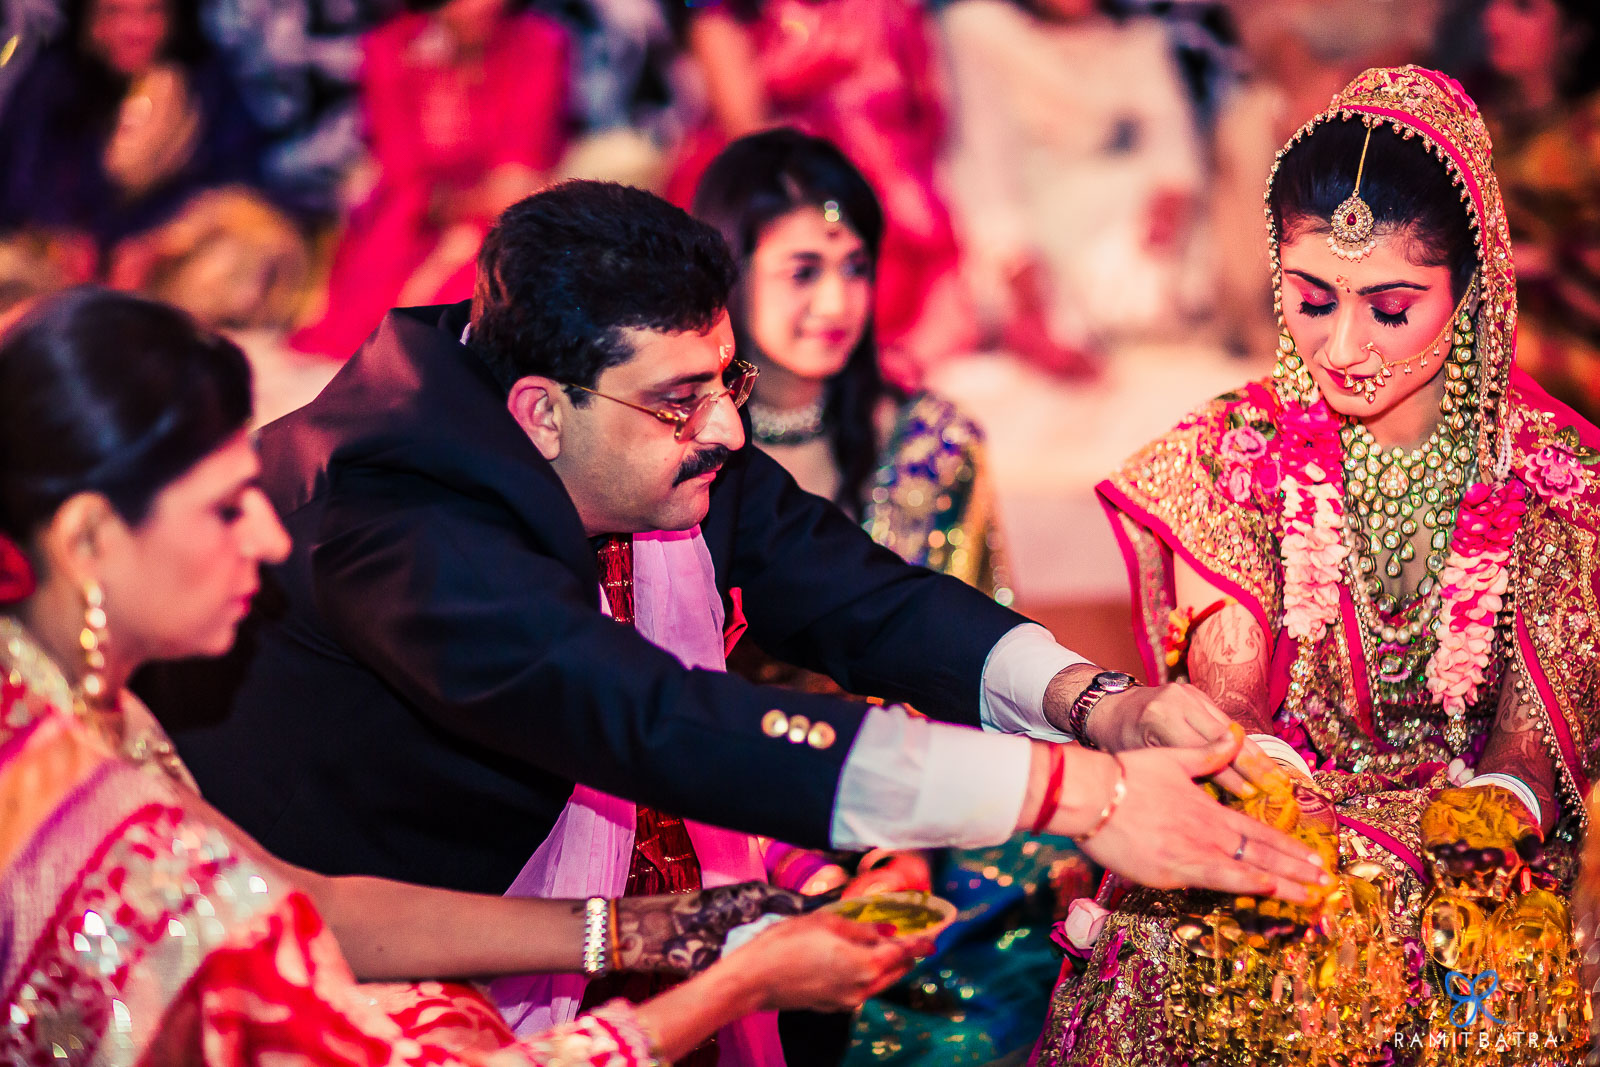 Wedding-Photographer-Hyderabad-India-RamitBatra_65